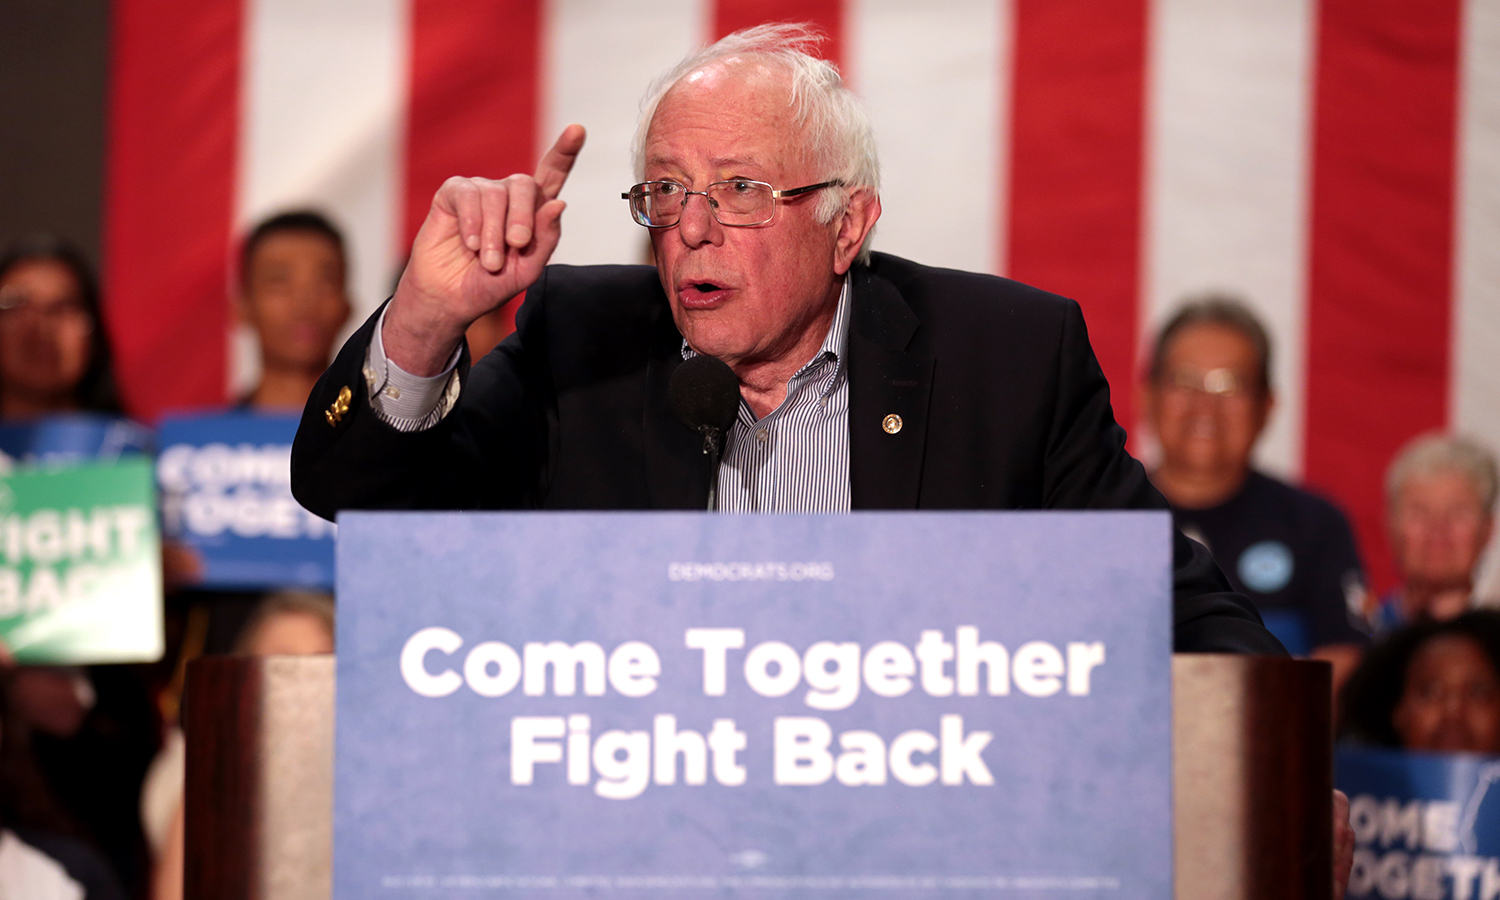 """U.S. Senator Bernie Sanders speaking with supporters at a """"Come Together and Fight Back"""" rally hosted by the Democratic National Committee at the Mesa Amphitheater in Mesa, Arizona on April 21, 2017 (photo credit:  Gage Skidmore )."""